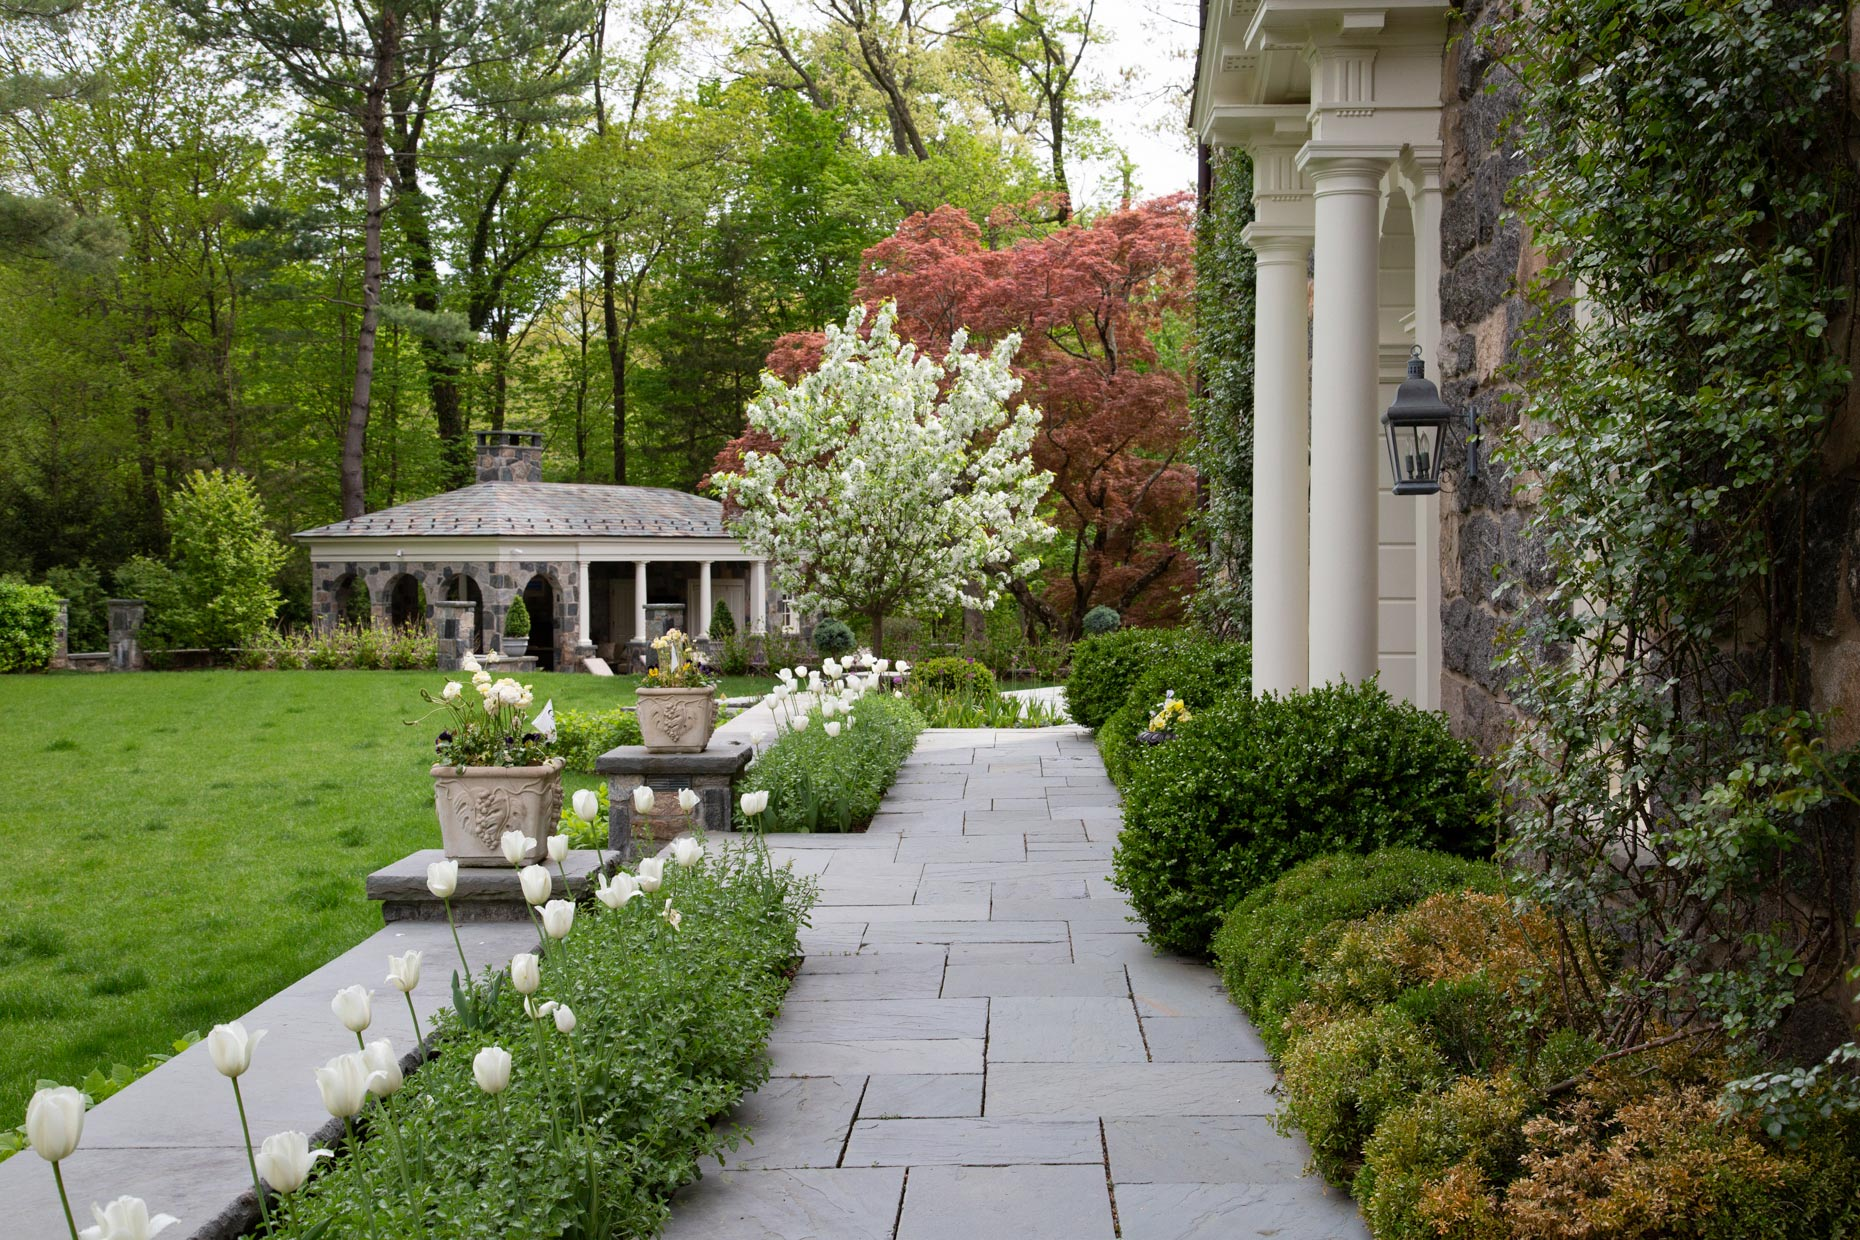 Garden-photography-landscape-architecture-photographer-Caryn-B-Davis-Cummin-Associates